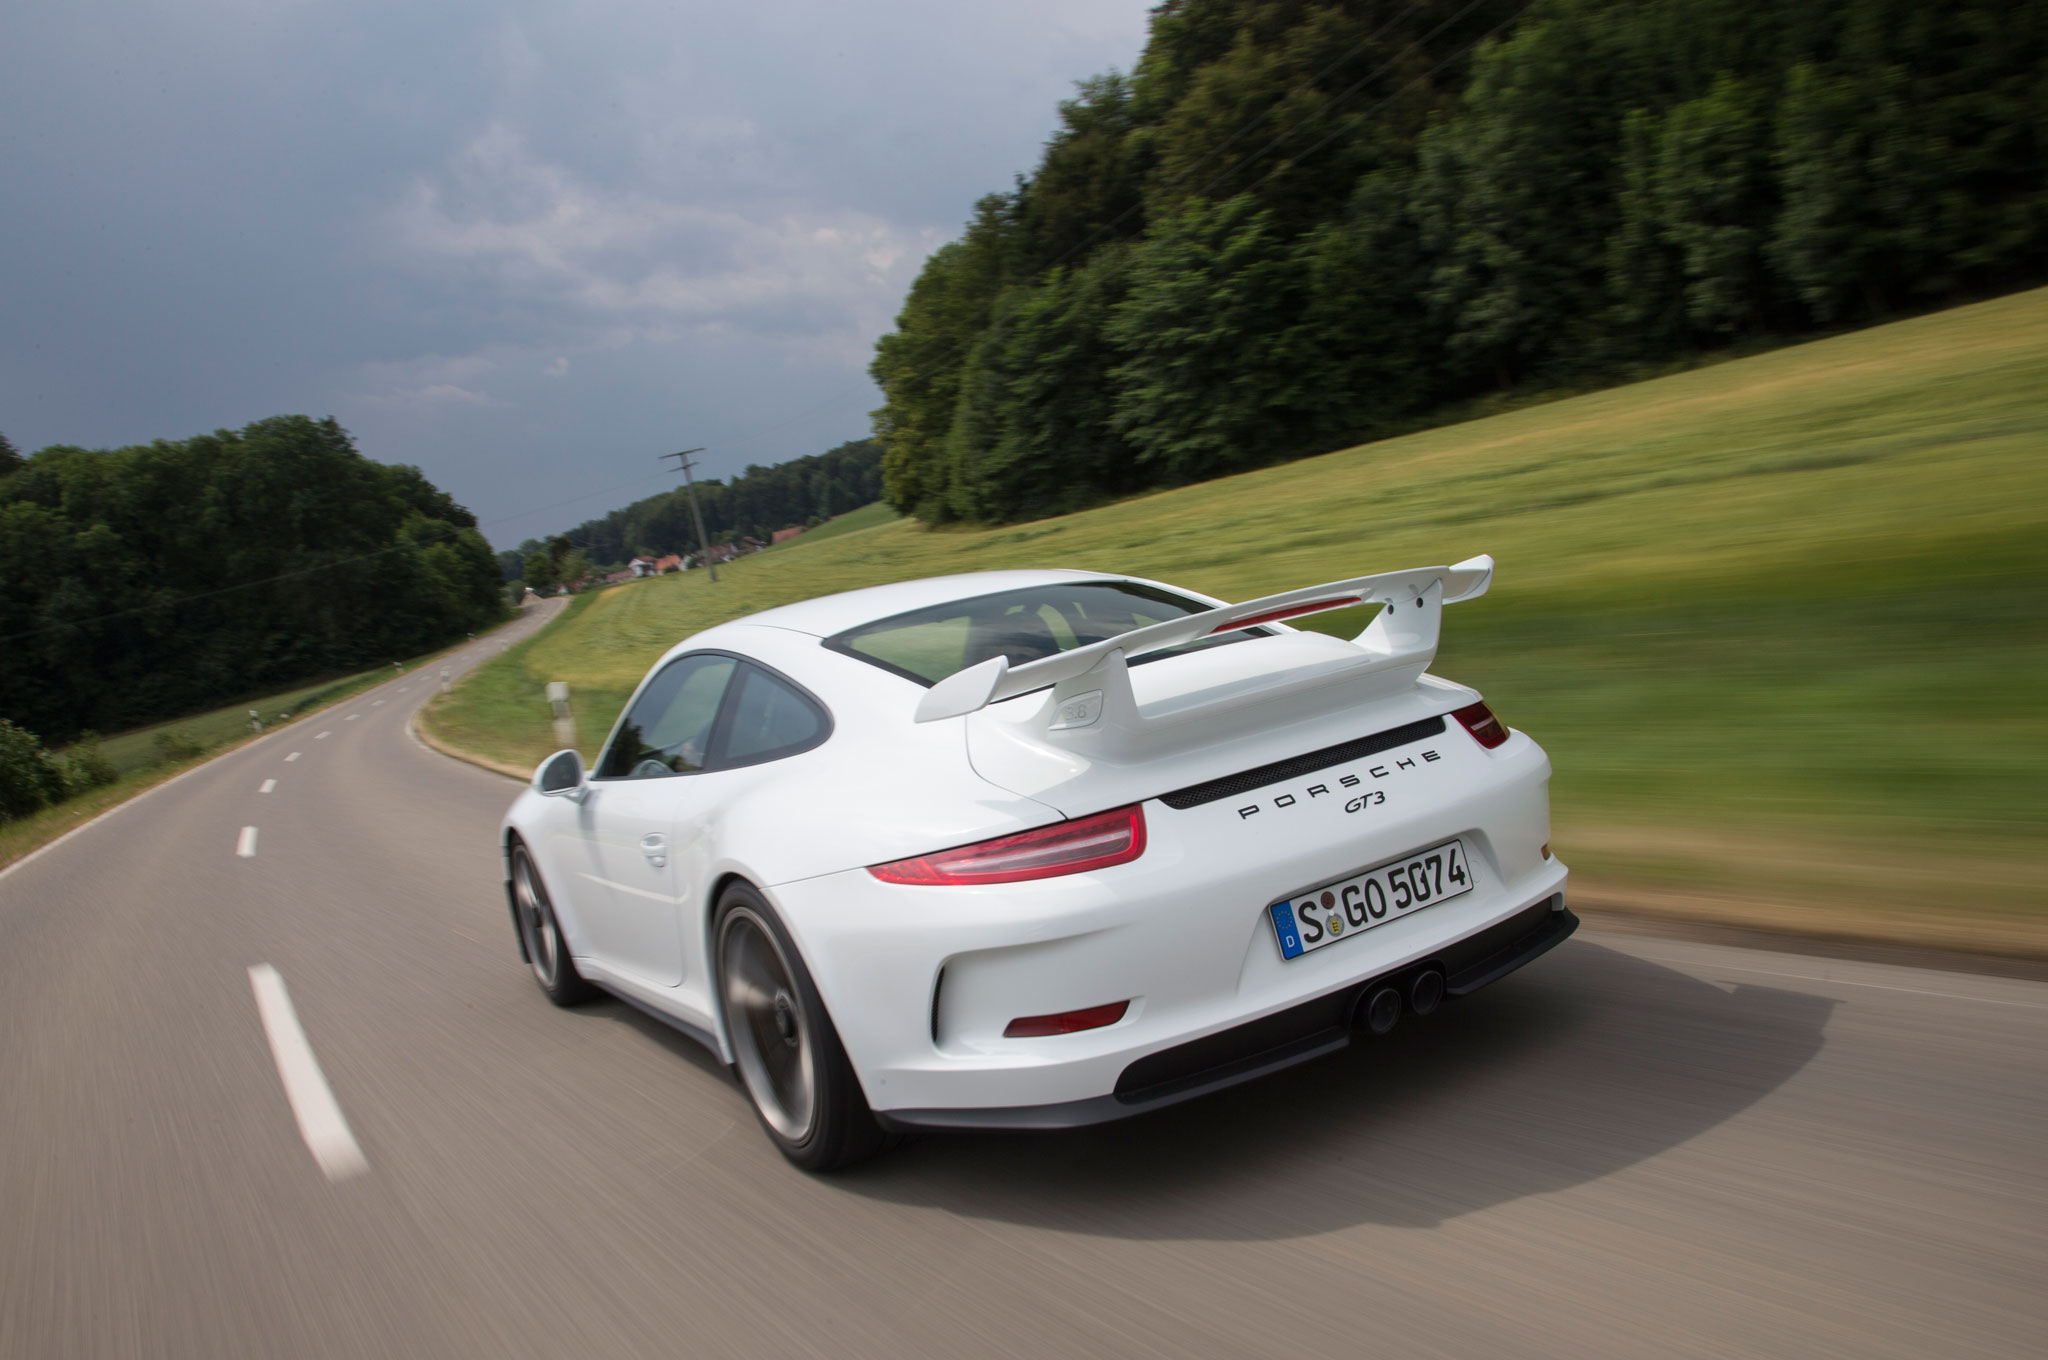 2014 Porsche 911 GT3 Rear Left View 24